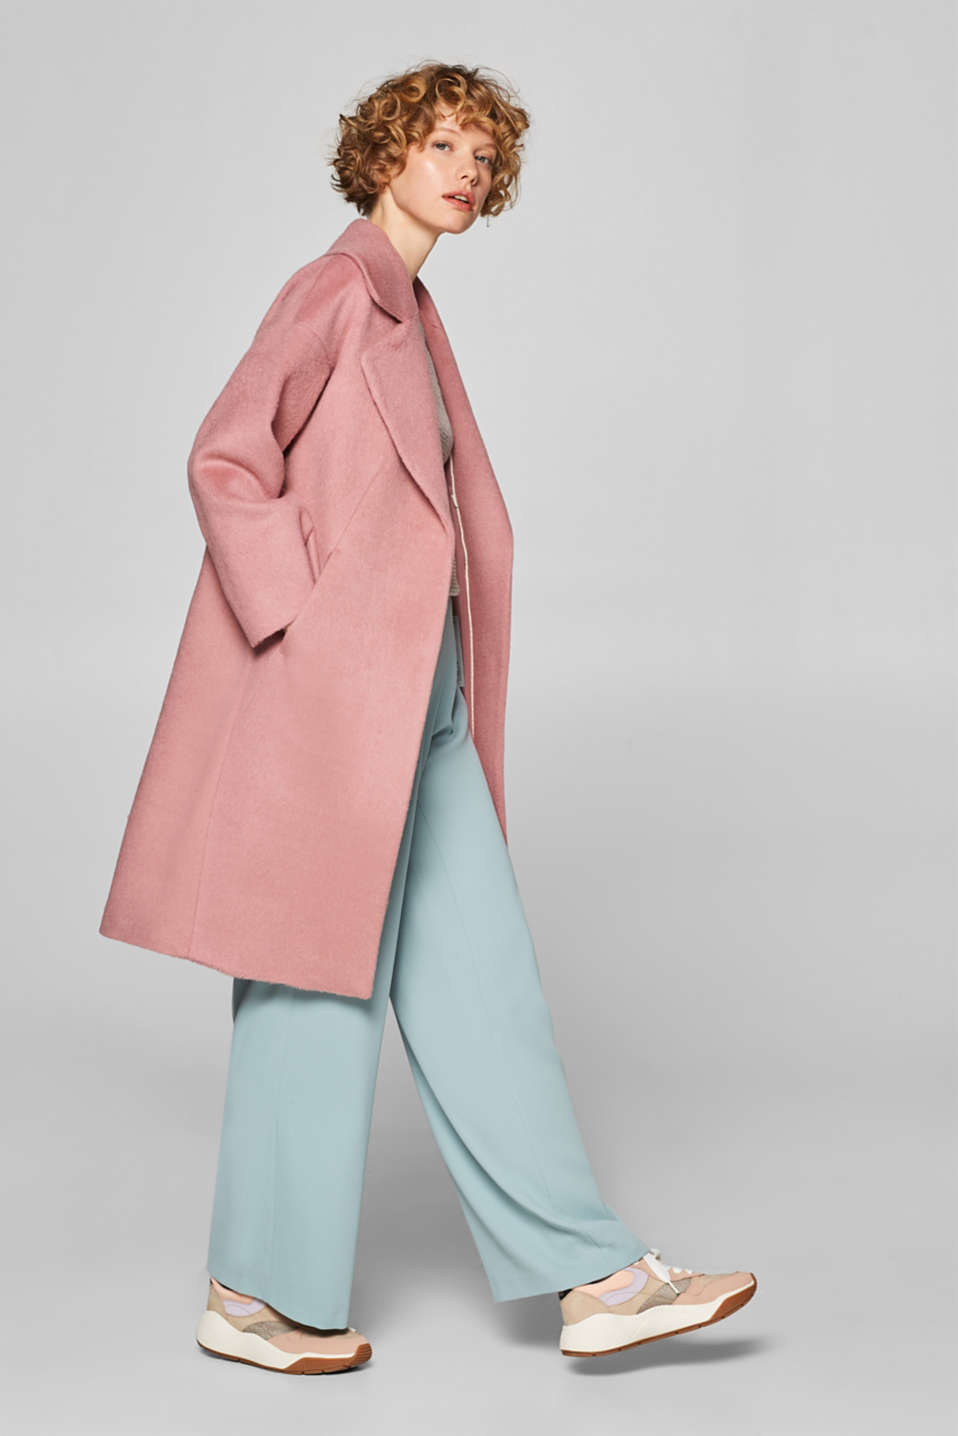 Esprit - Made of blended wool: Coat with retro charm